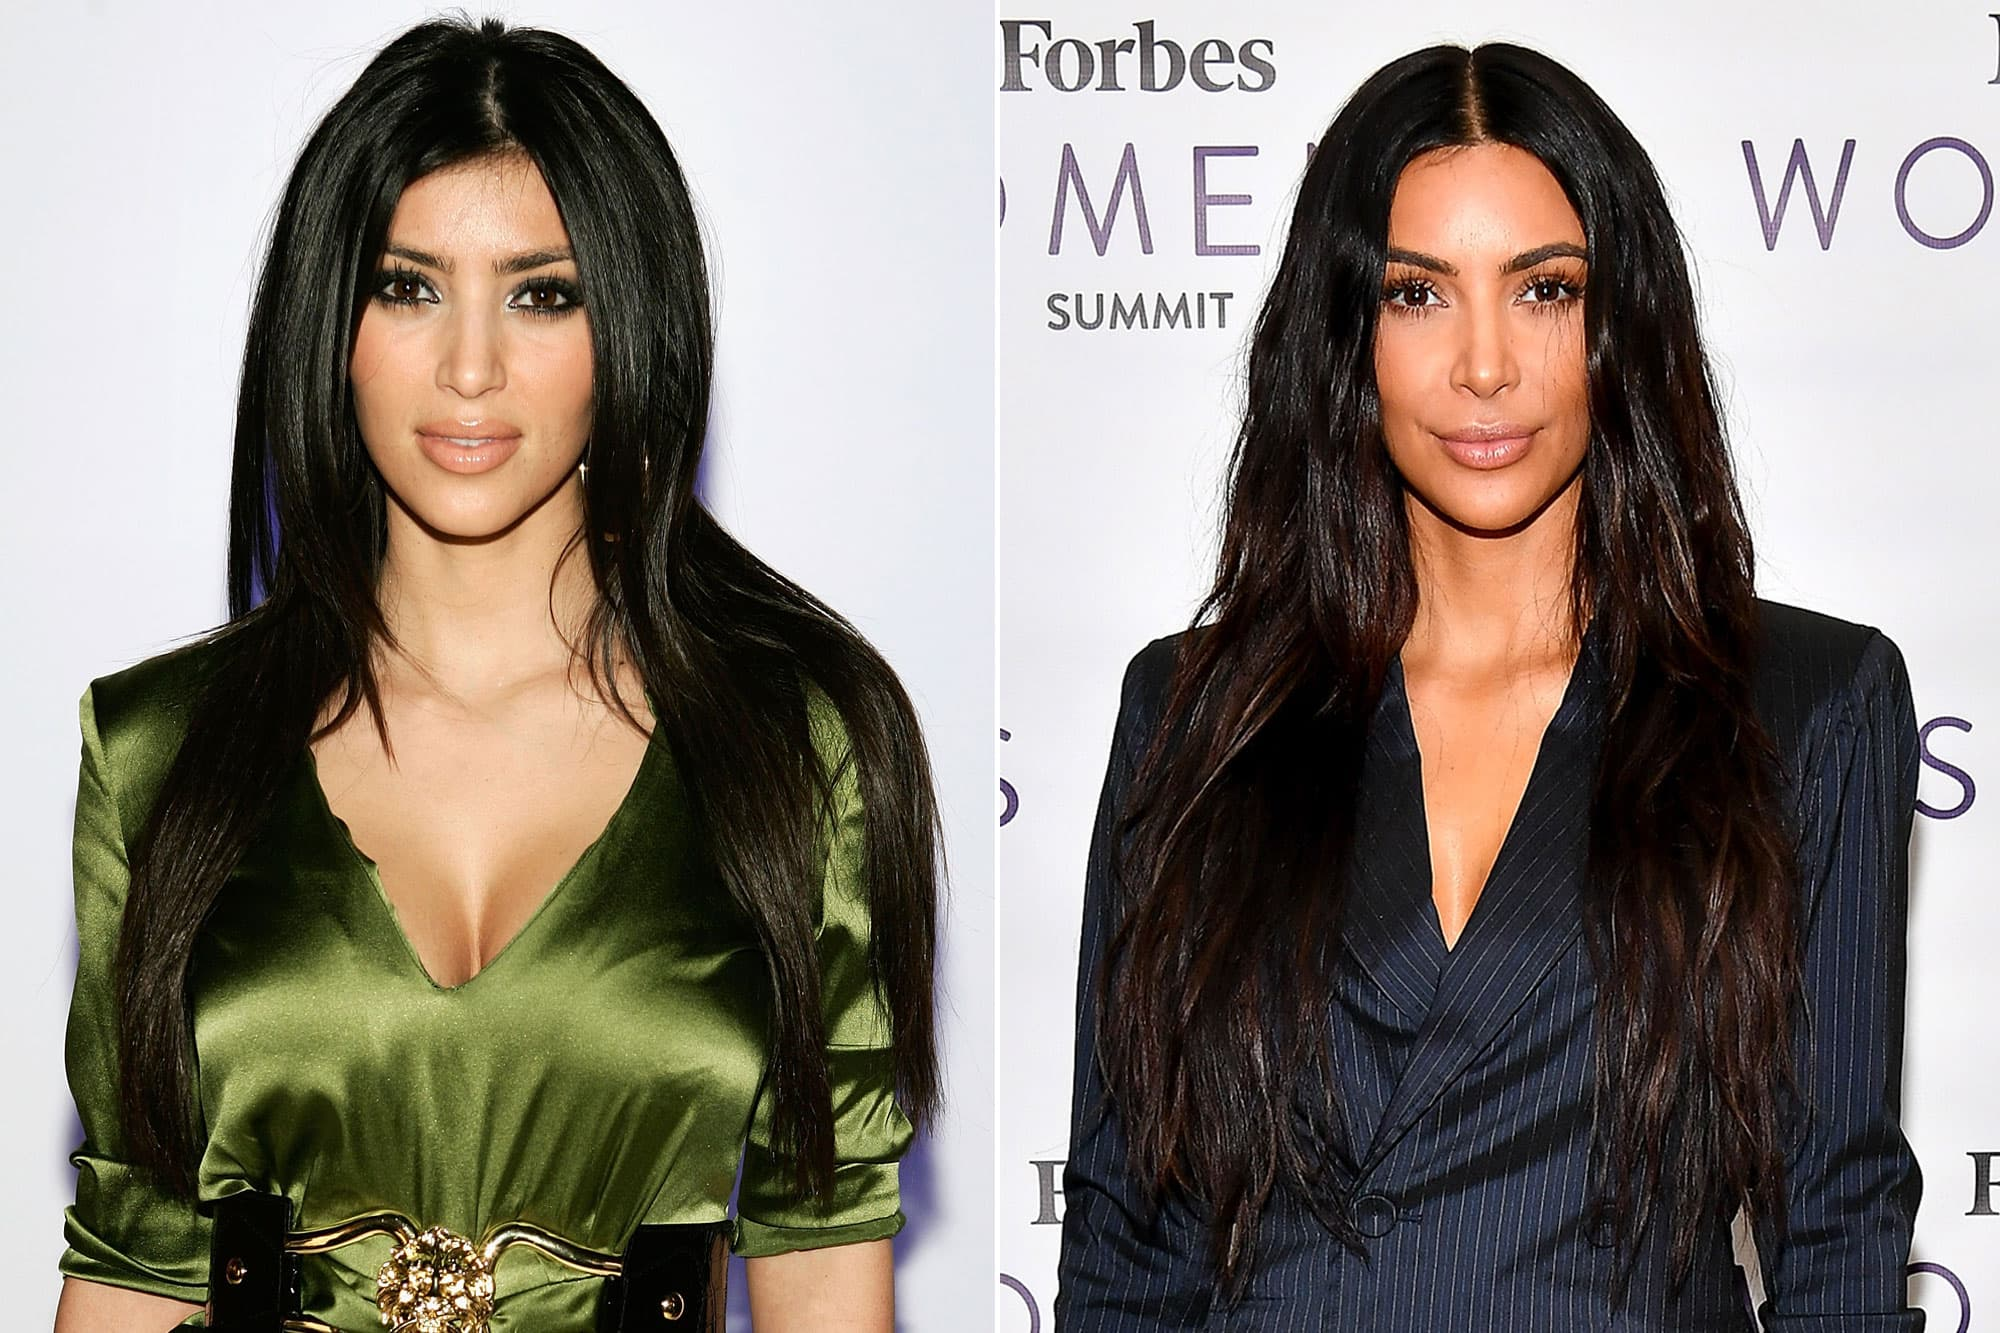 Kardashian Family Before And After Plastic Surgery photo - 1